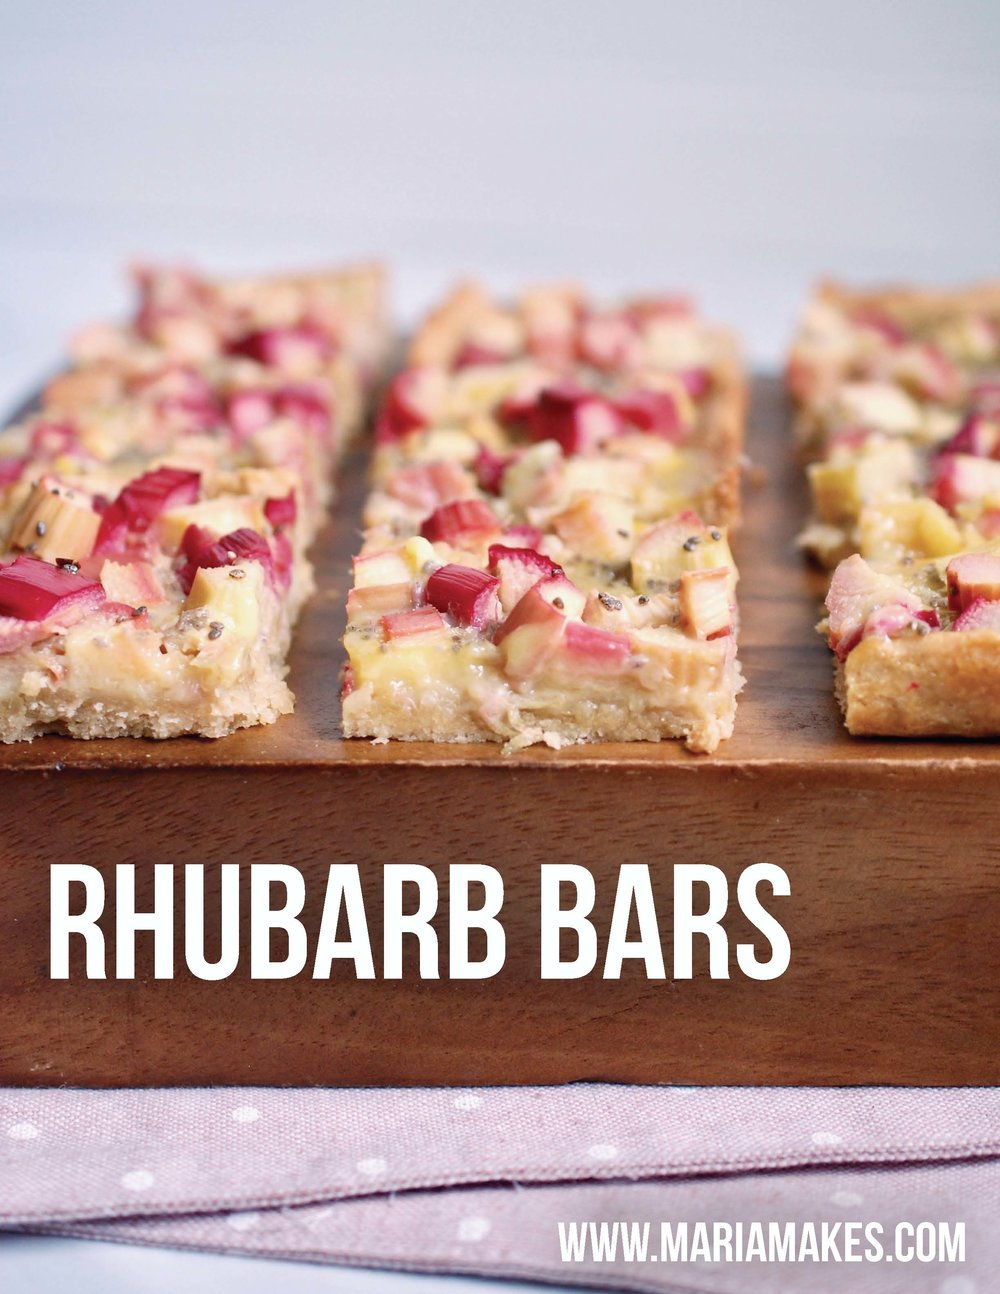 Rhubarb Bars – Maria Makes: Make the most of rhubarb season with these tangy and sweet bars, free of refined sugar and refined flour, a healthy remix that is full of good-for-you ingredients and oh so tasty!